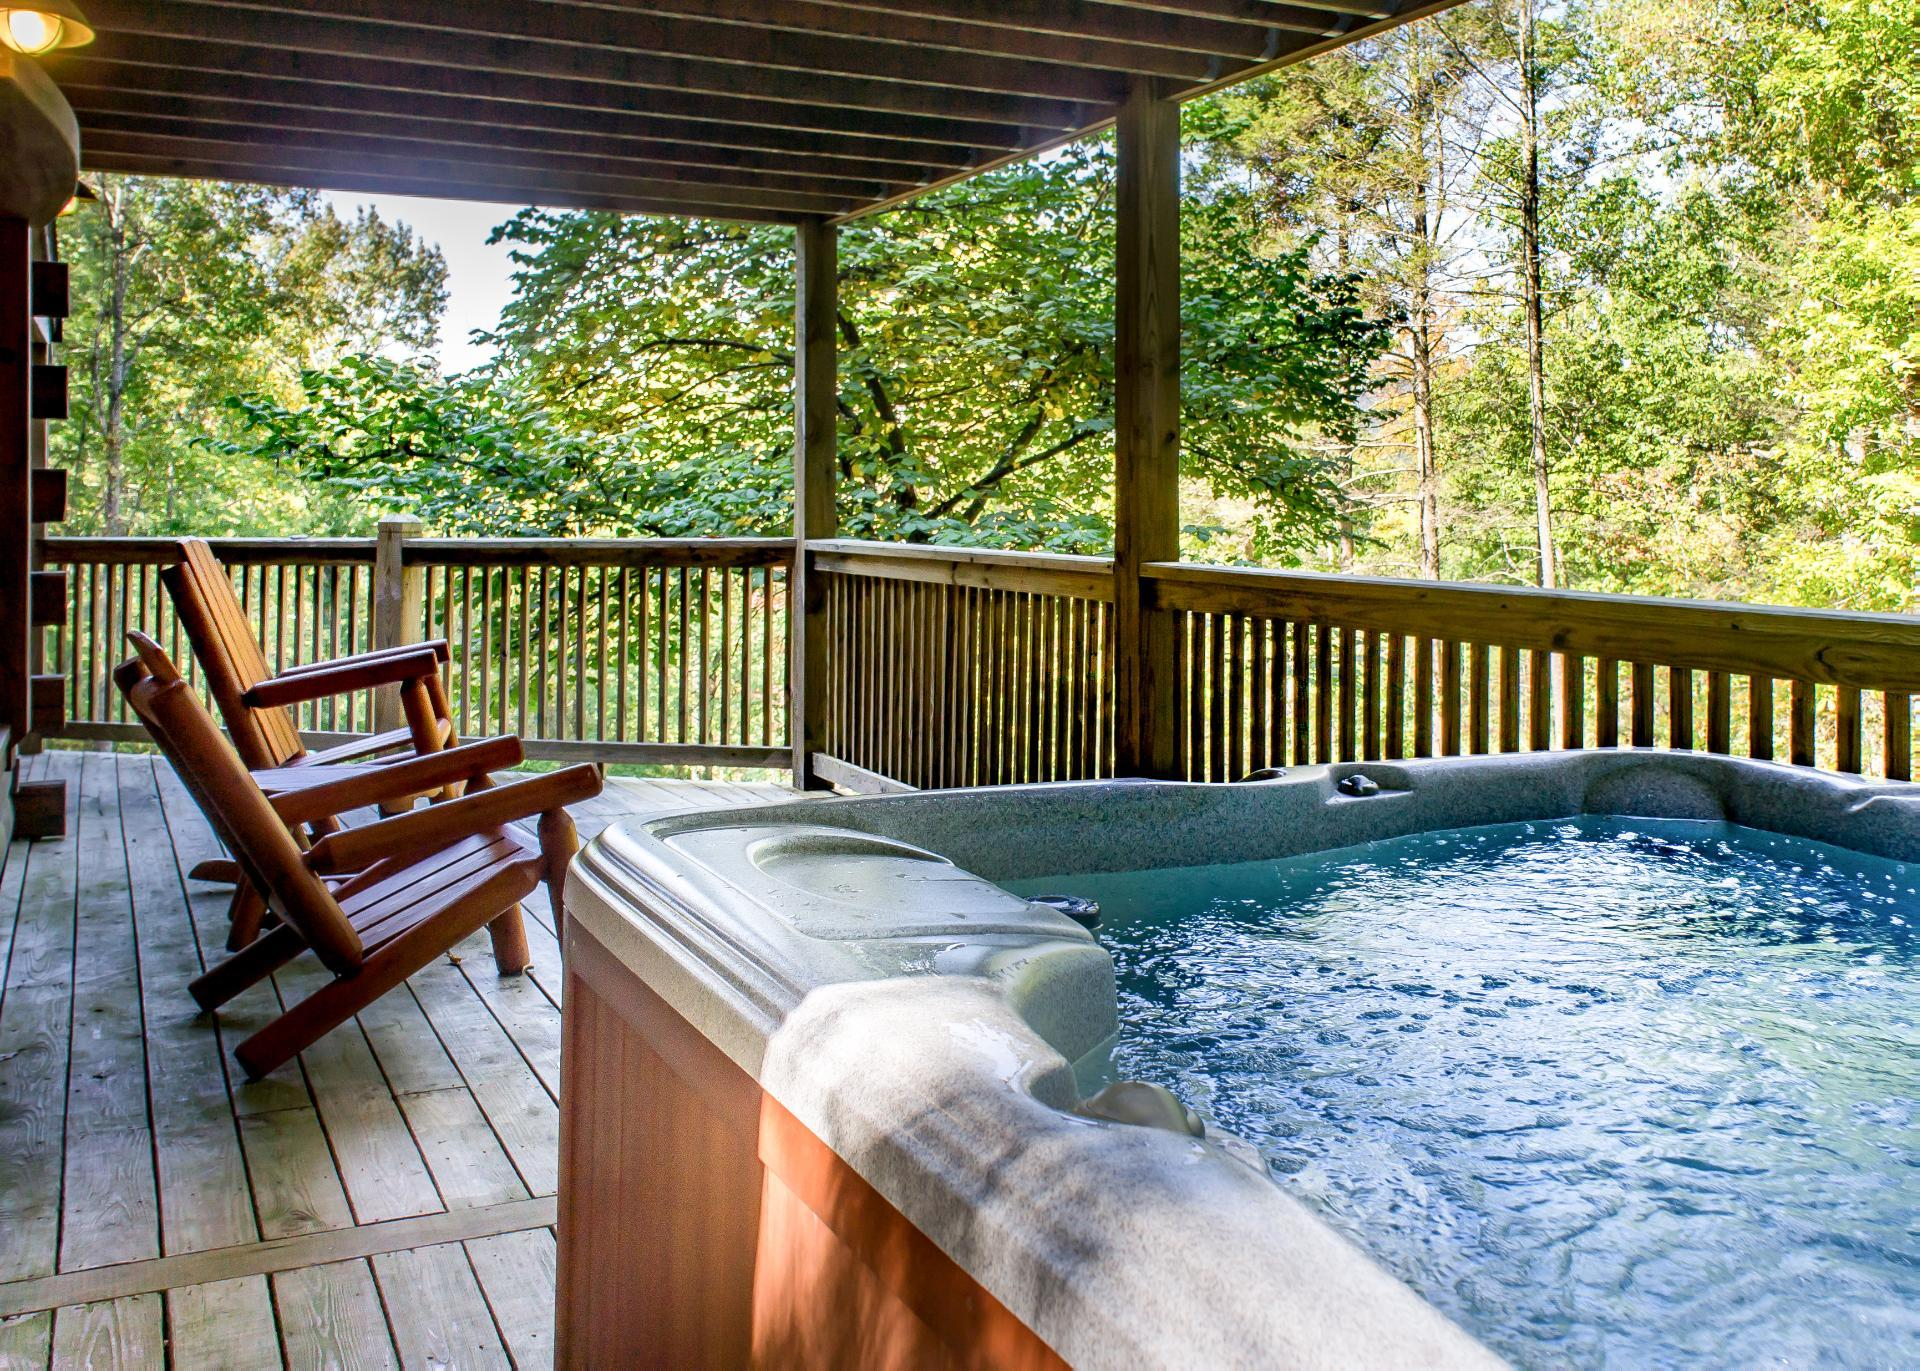 Property Image 2 - Rustic Log Cabin Near Lush Forest with Viewing Deck